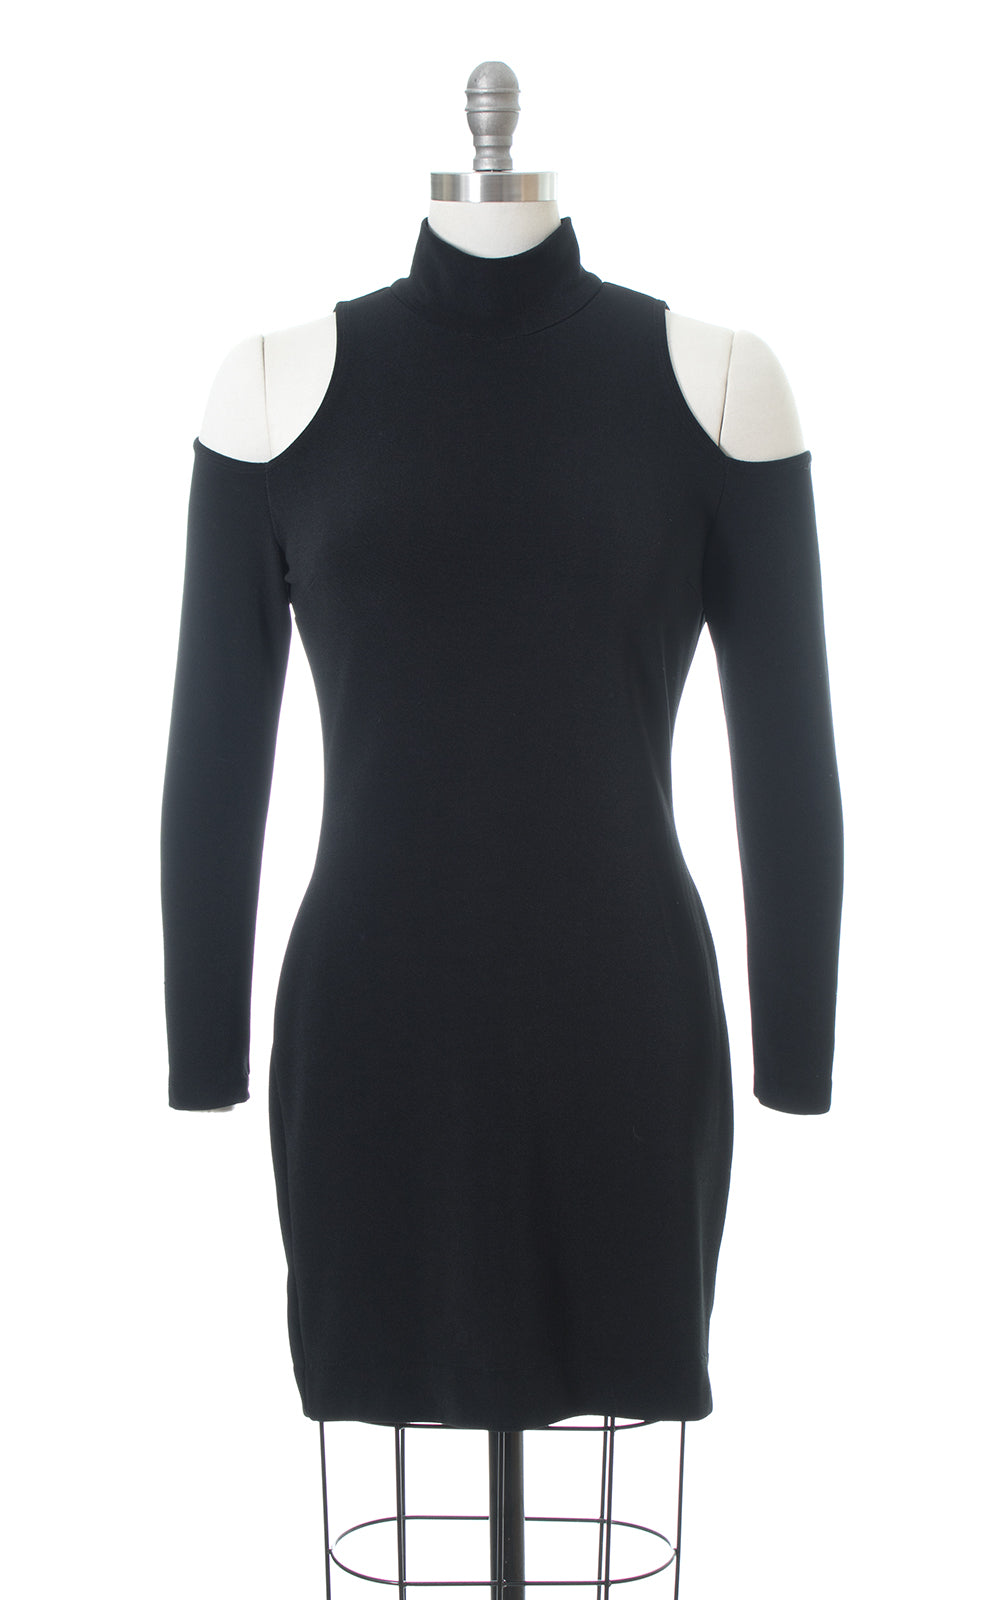 1990s Cold Shoulder Stretchy Black Mini Dress